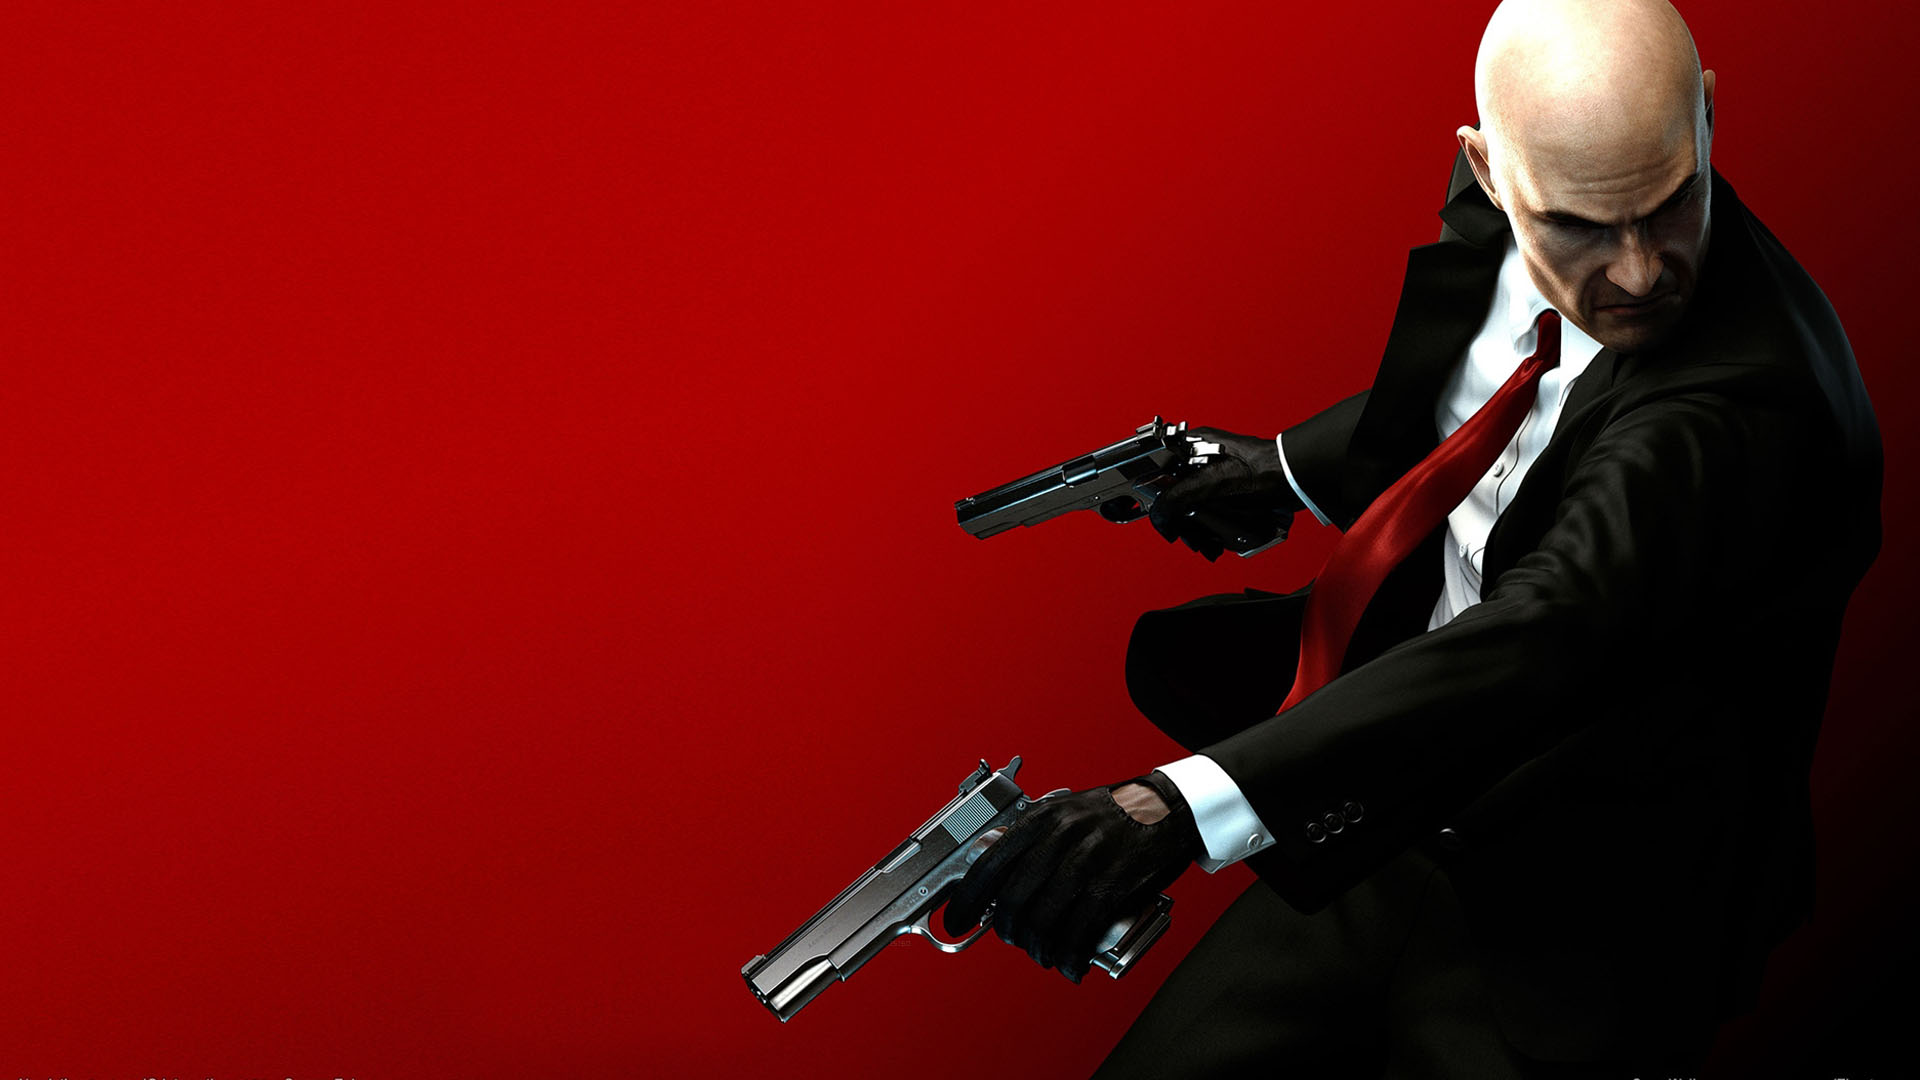 Fotos   1080p Hitman Hd Wallpapers 1080p Hitman Reborn Hd 1920x1080